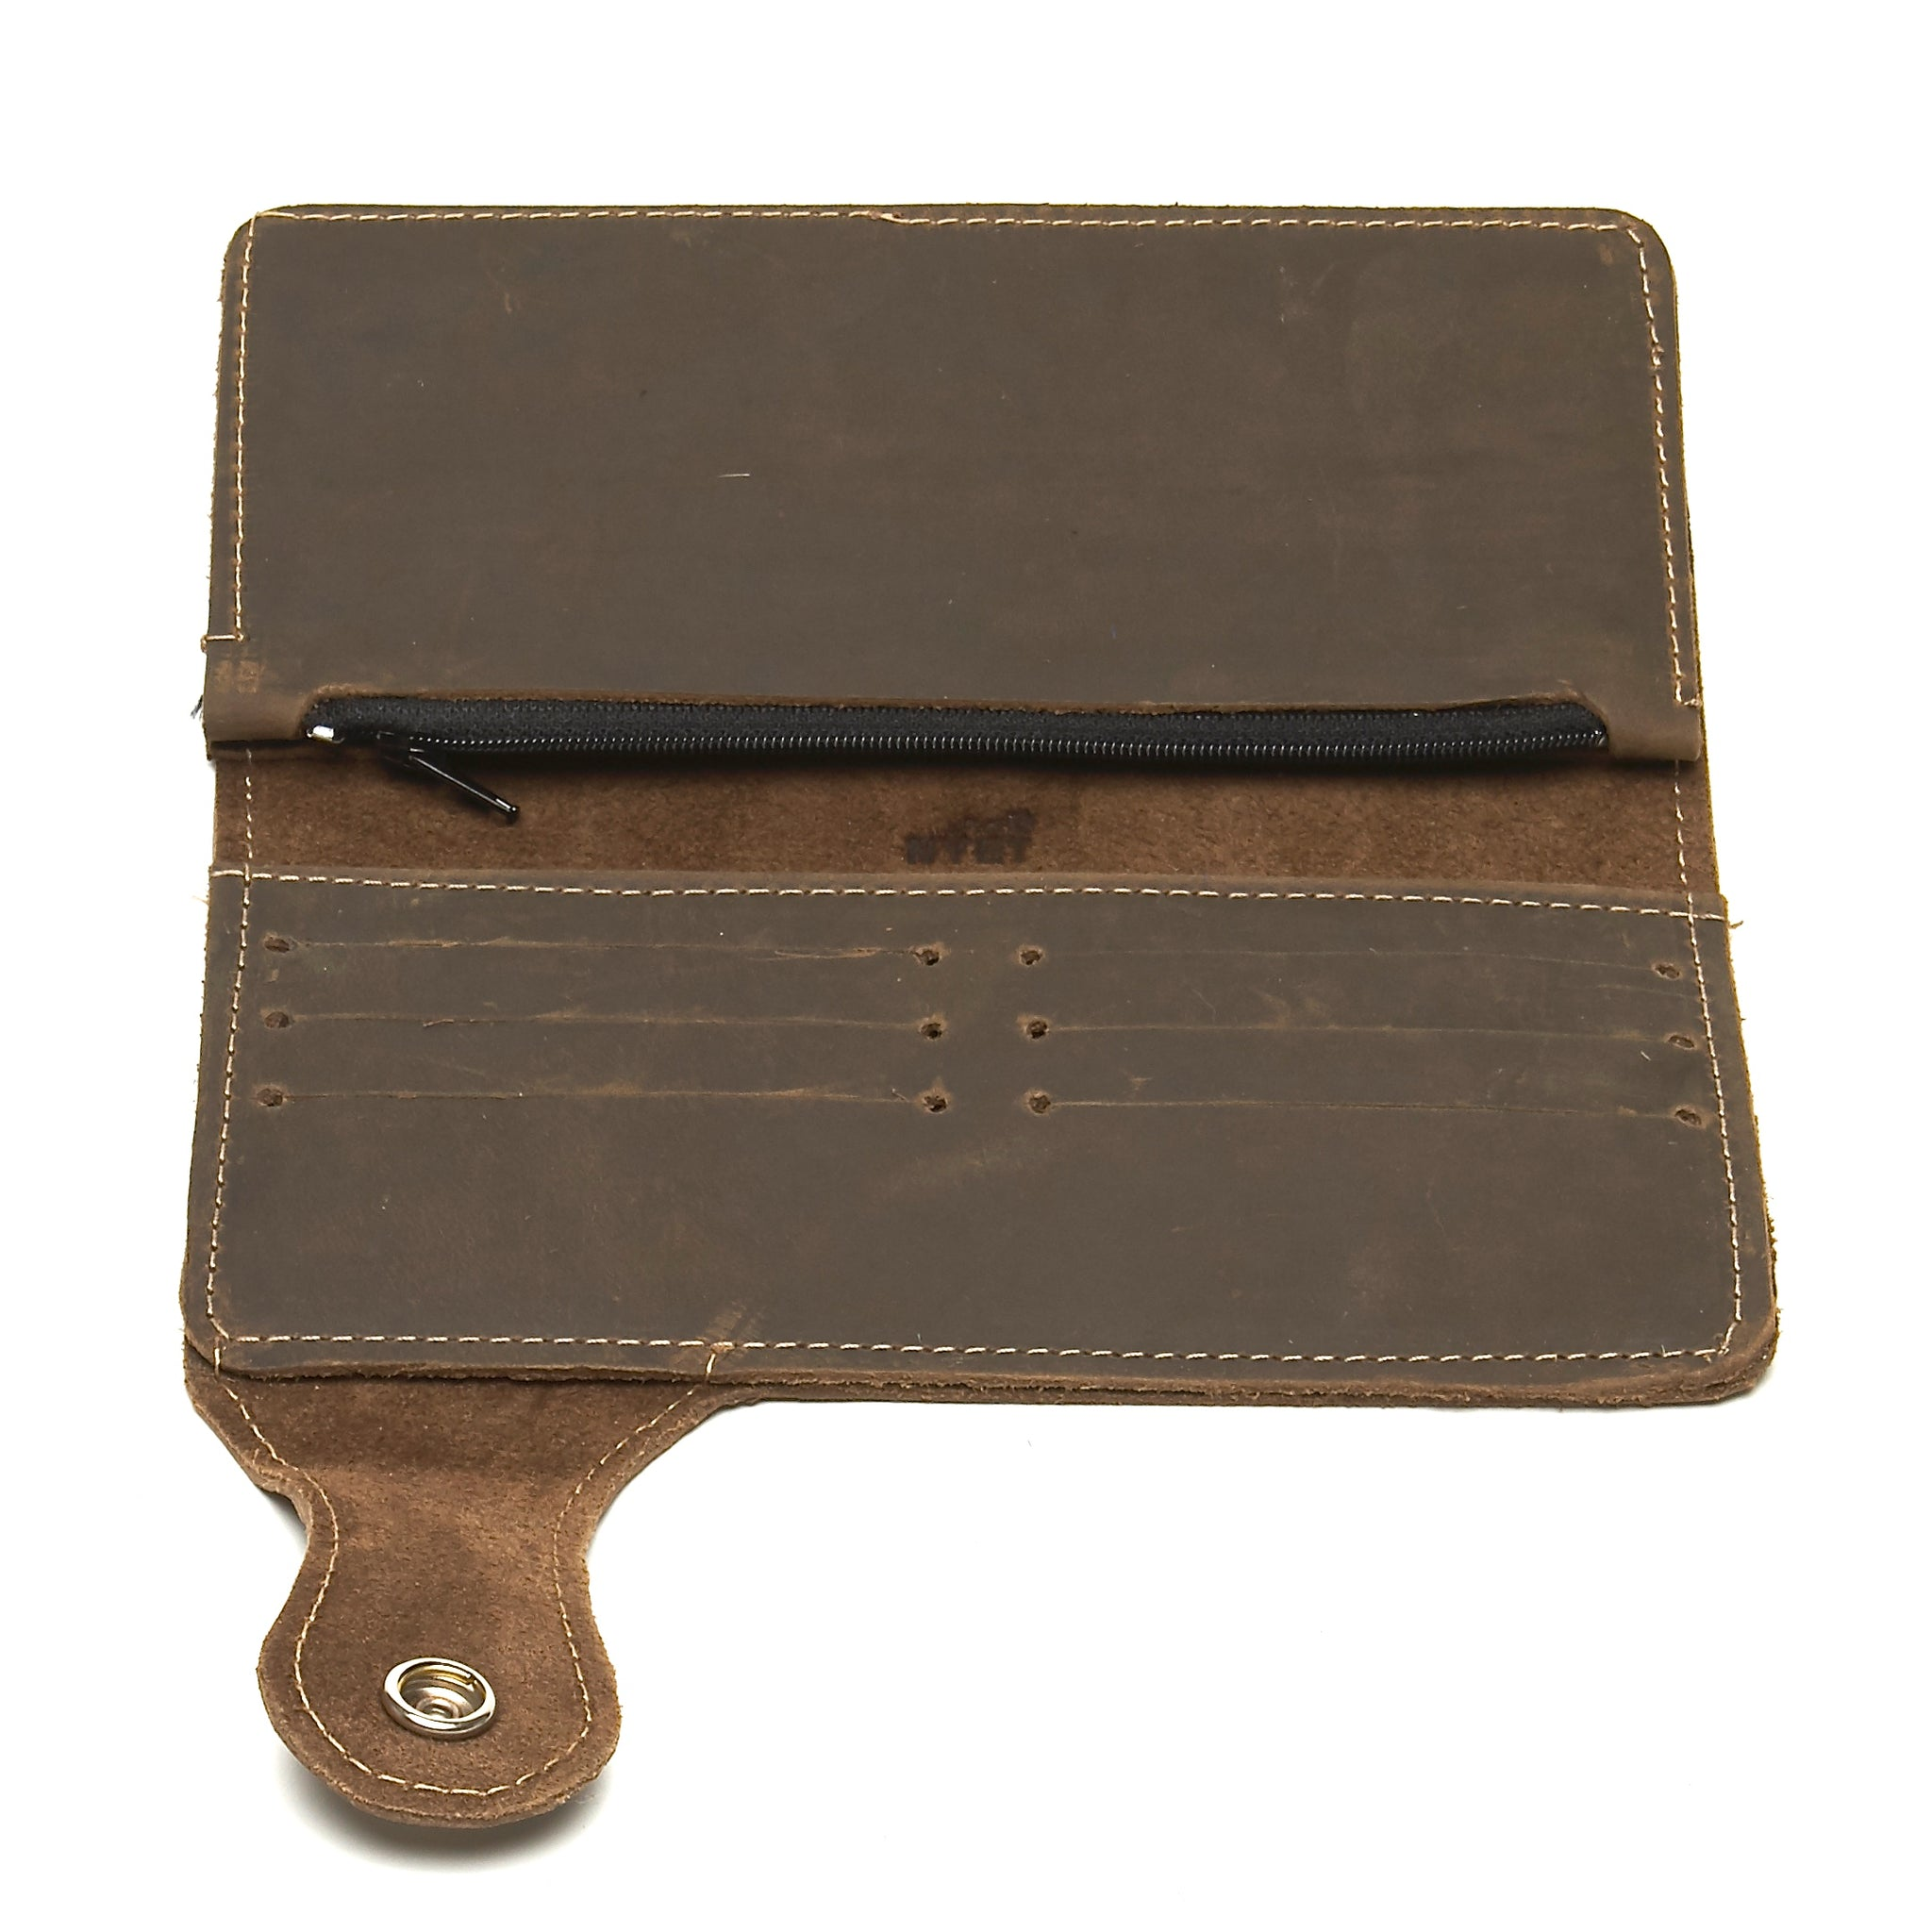 DISTRESSED UTILITY LEATHER COWHIDE BIKER WALLET. by nyet jewelry.